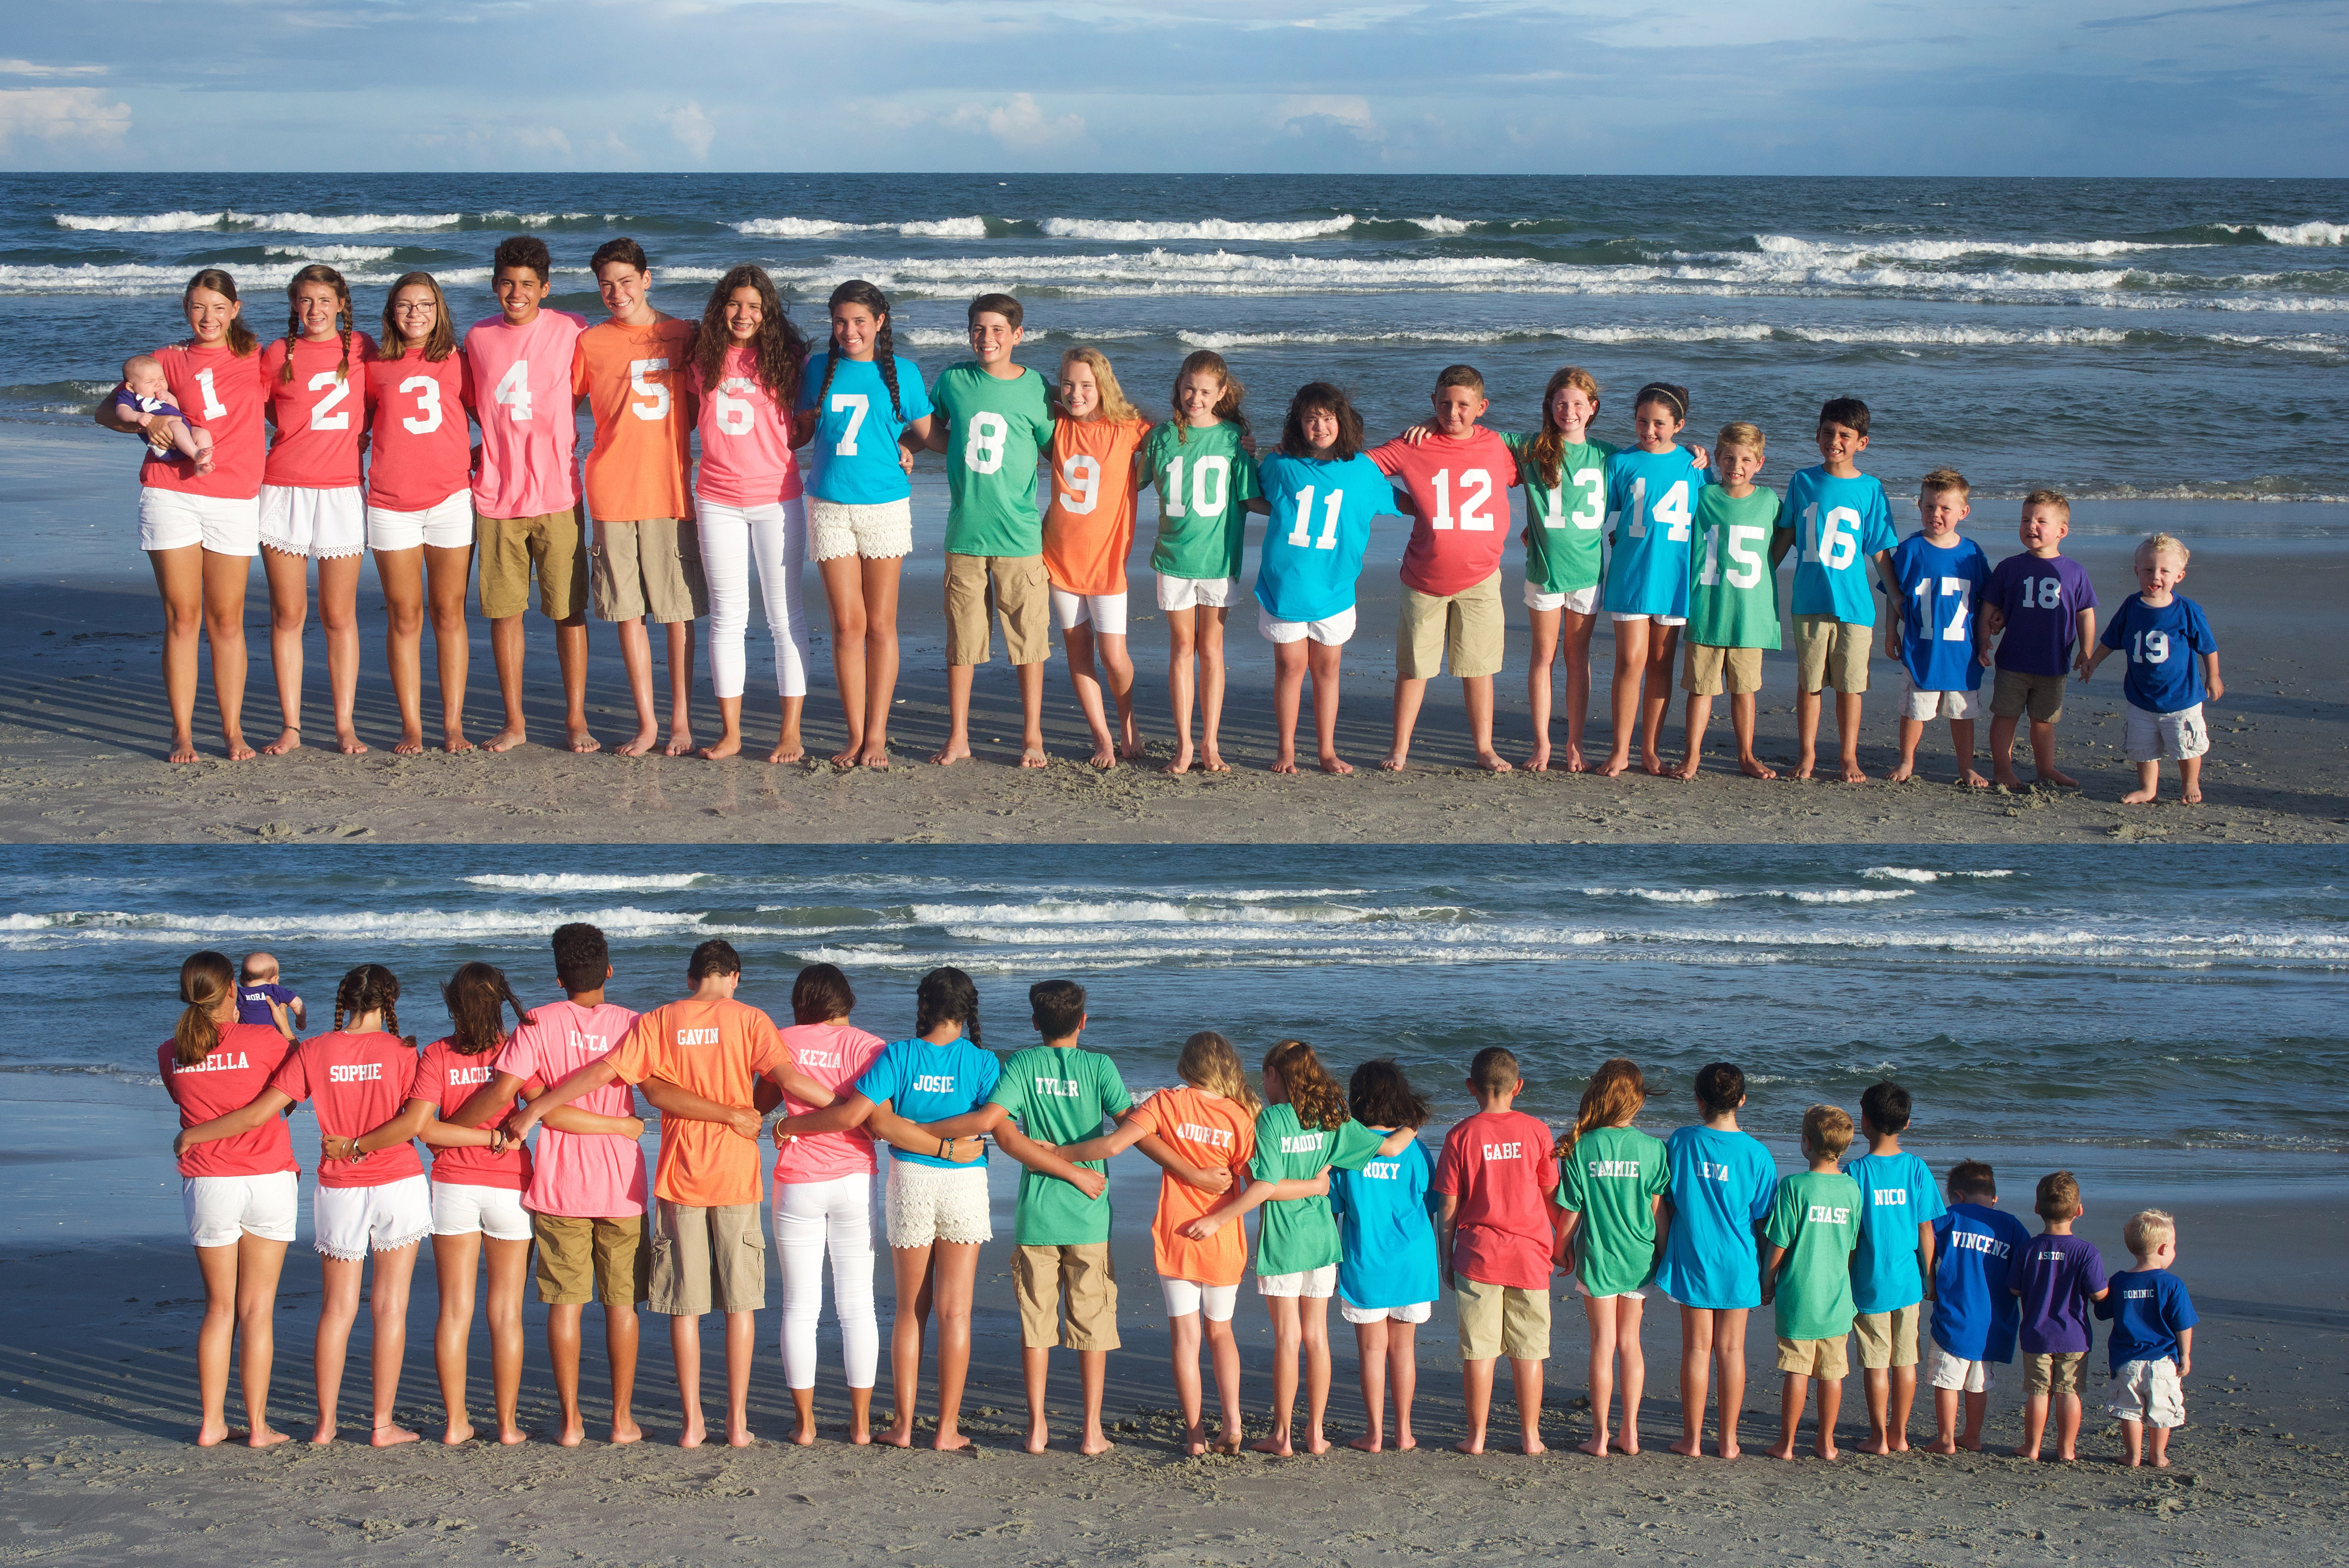 Completely new Custom T-Shirts for The Grandkids Take The Beach - Shirt Design Ideas GP25